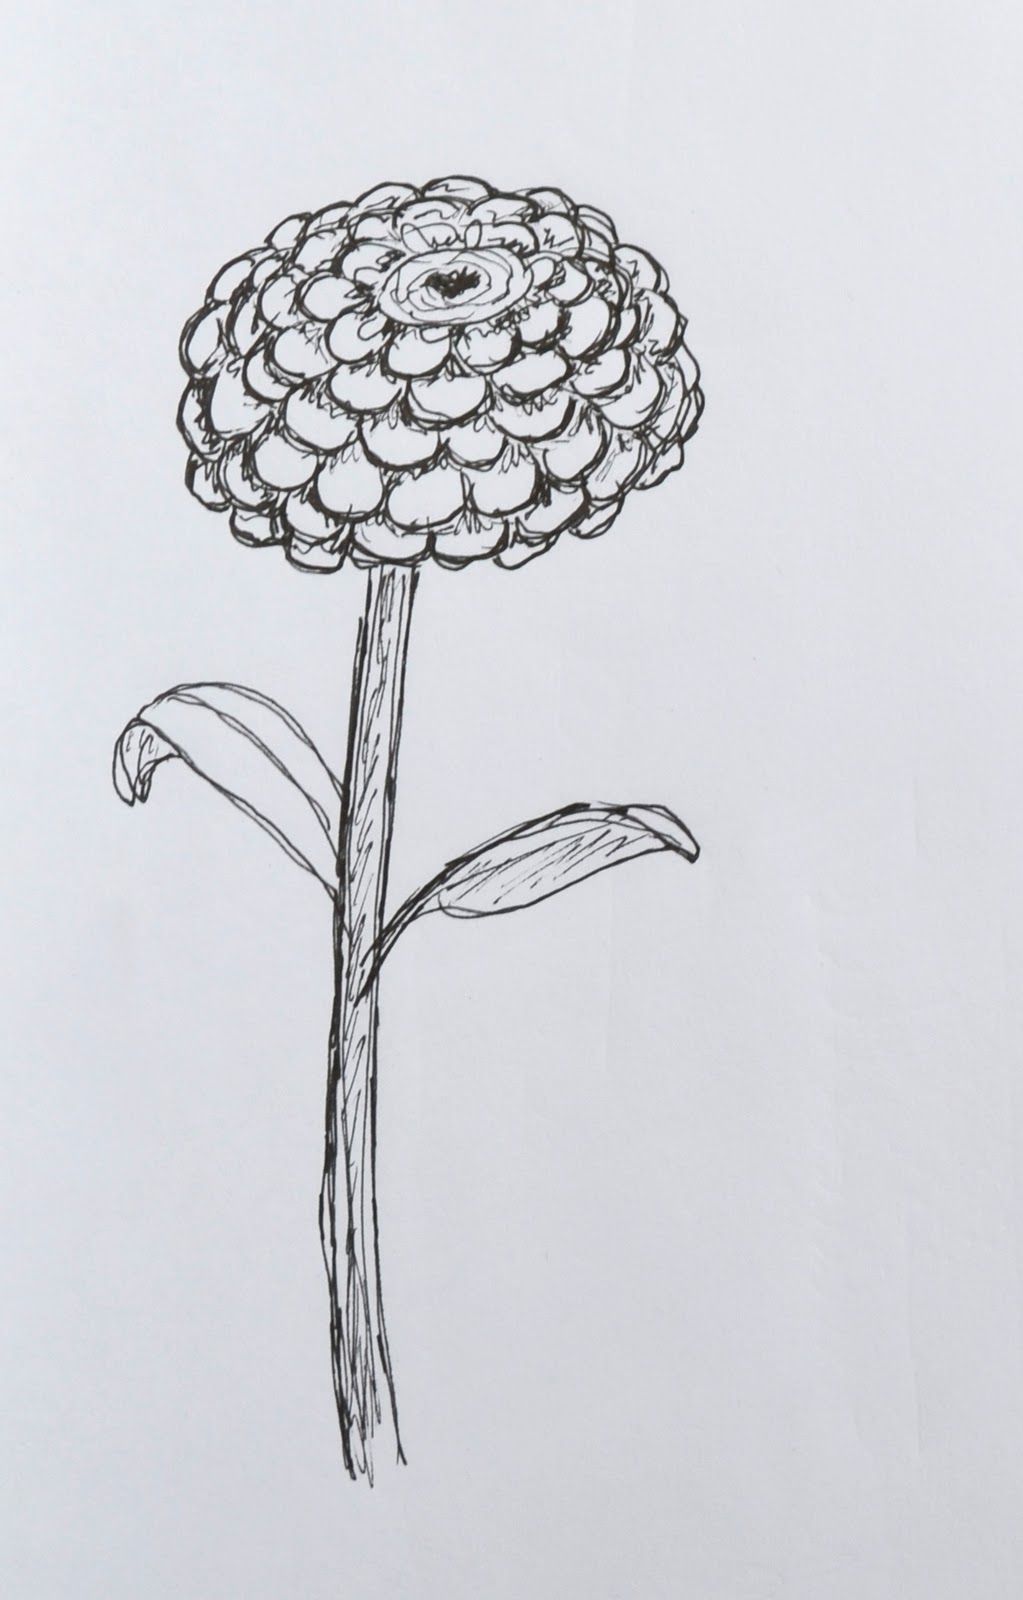 Coloring Sheet Of Zinnias Color The Flower With Colored Pencils